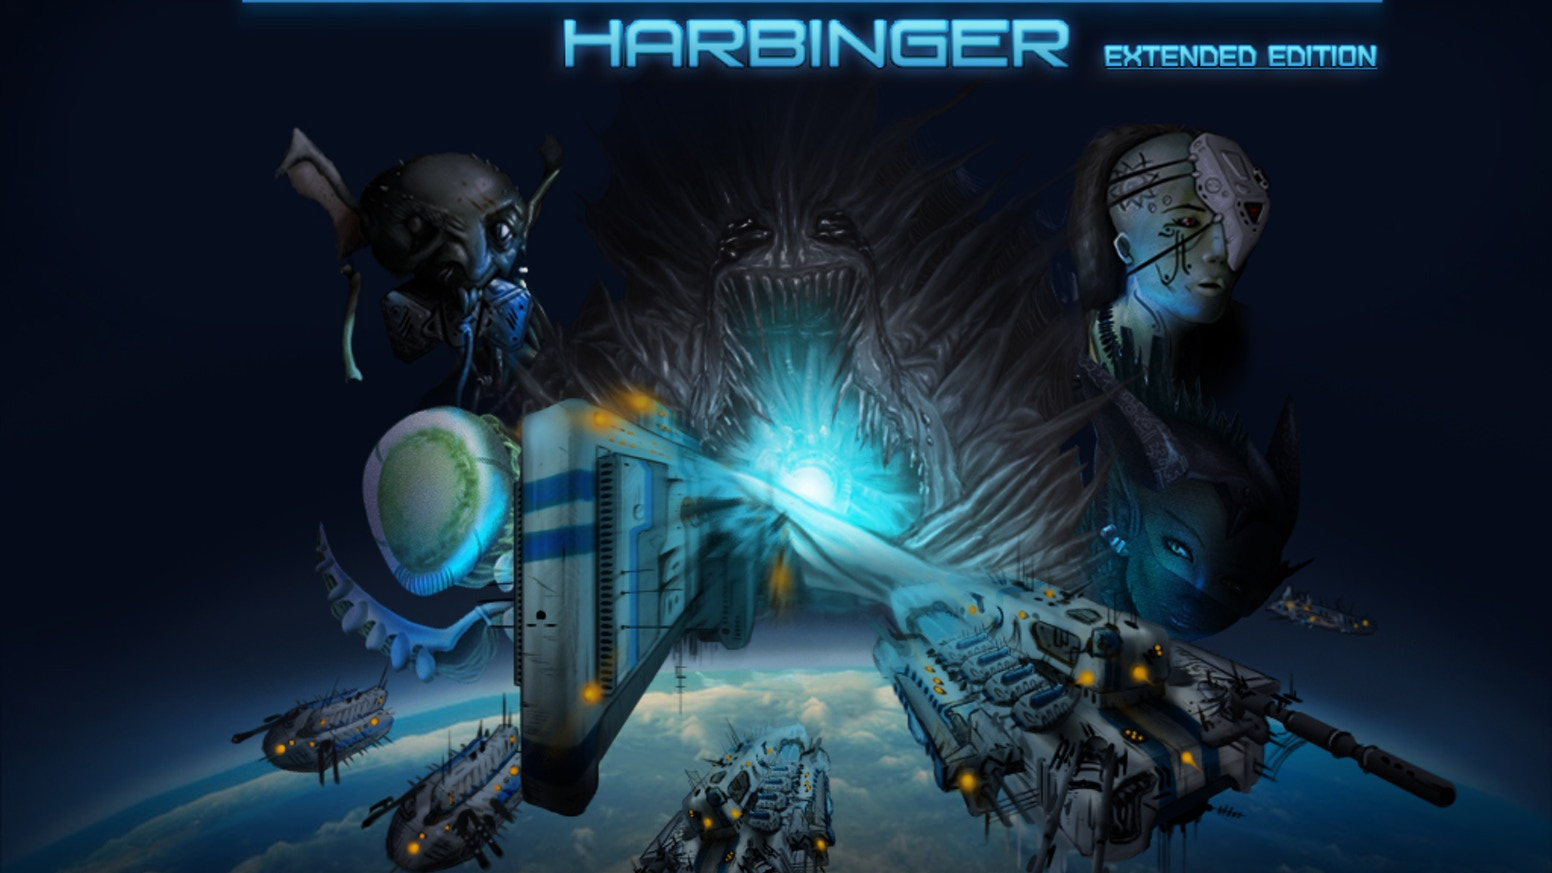 Battlestation Harbinger Extended Edition By Bugbyte Ludibooster